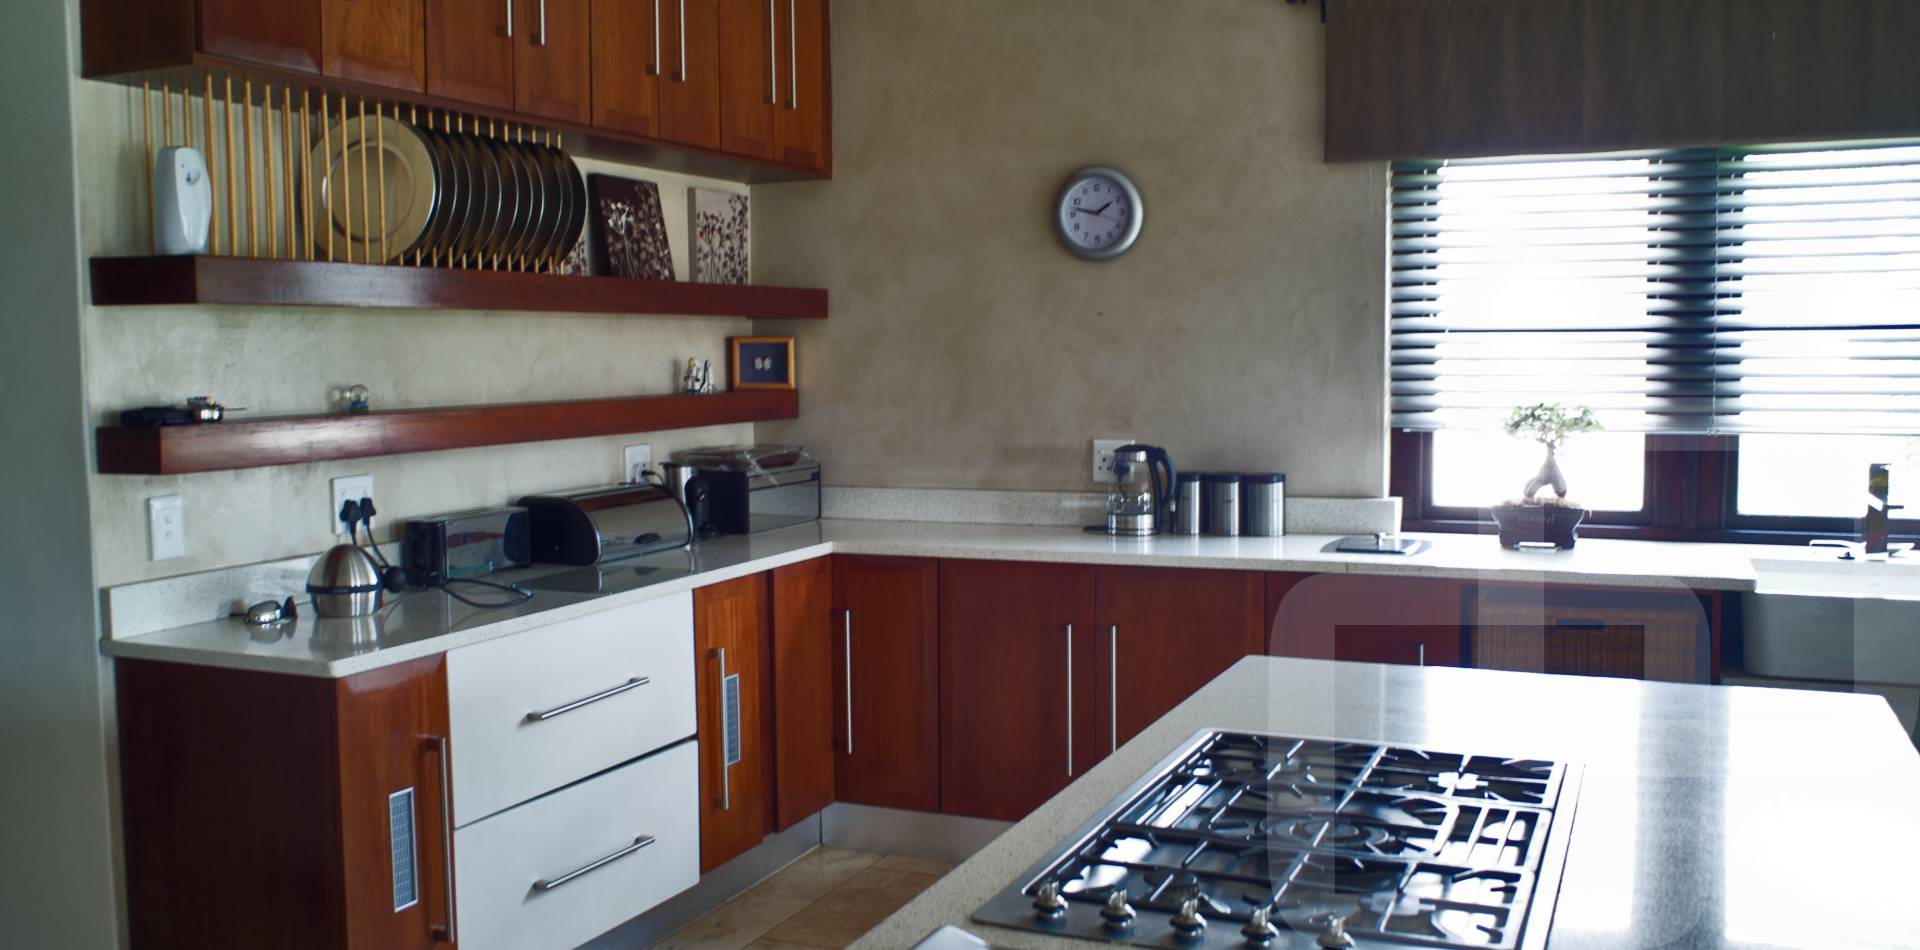 Kitchen designs affordable designer kitchens kitchen for Kitchen designs pretoria